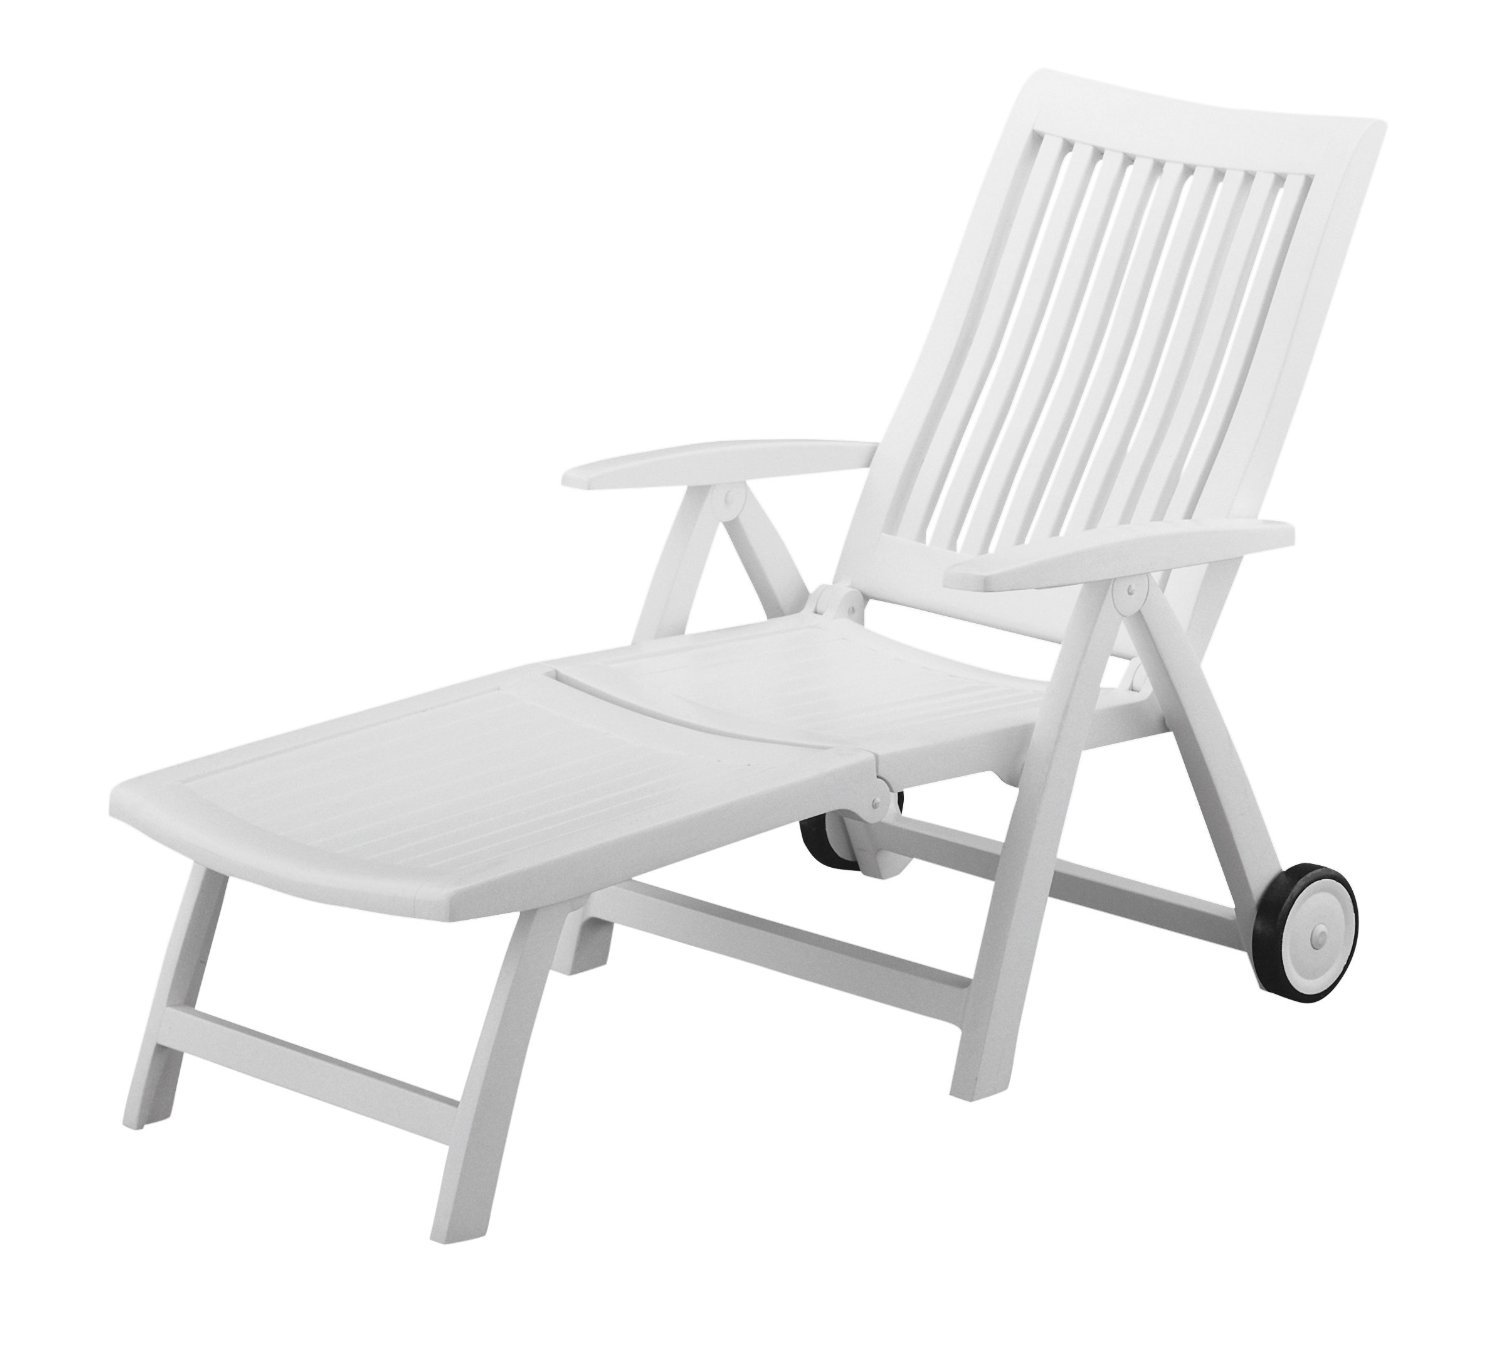 Amazon Roma Folding Lounger in White Resin Patio Lounge